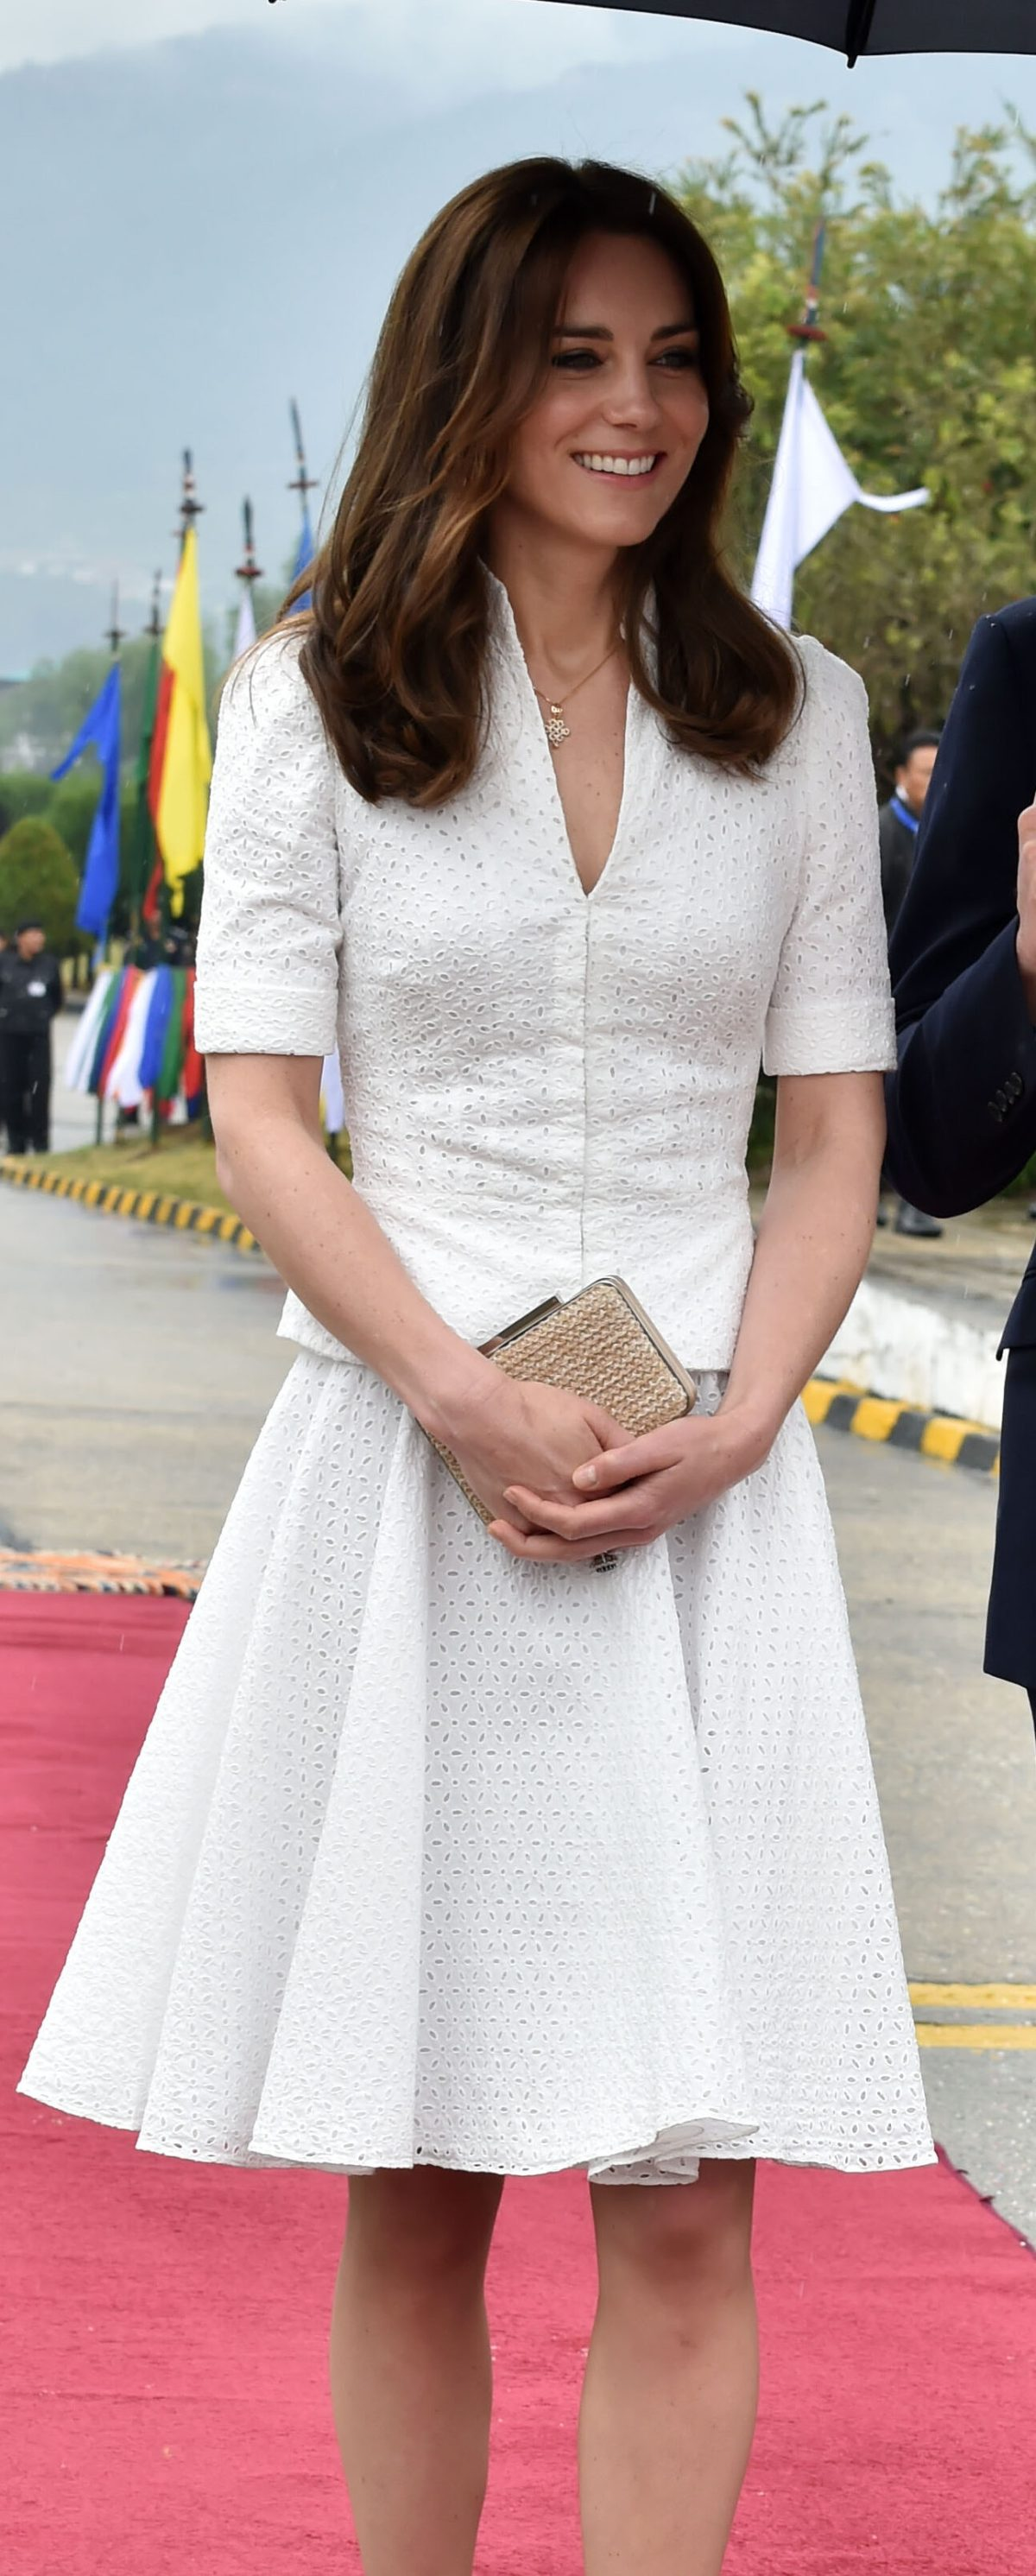 Image licensed to i-Images Picture Agency. 16/04/2016. Agra, India. The Duke and Duchess of Cambridge leaving Paro International Airport  in Bhutan on their way to the Taj Mahal in Agra on the final  day of their tour of India and Bhutan.  Picture by POOL / i-Images